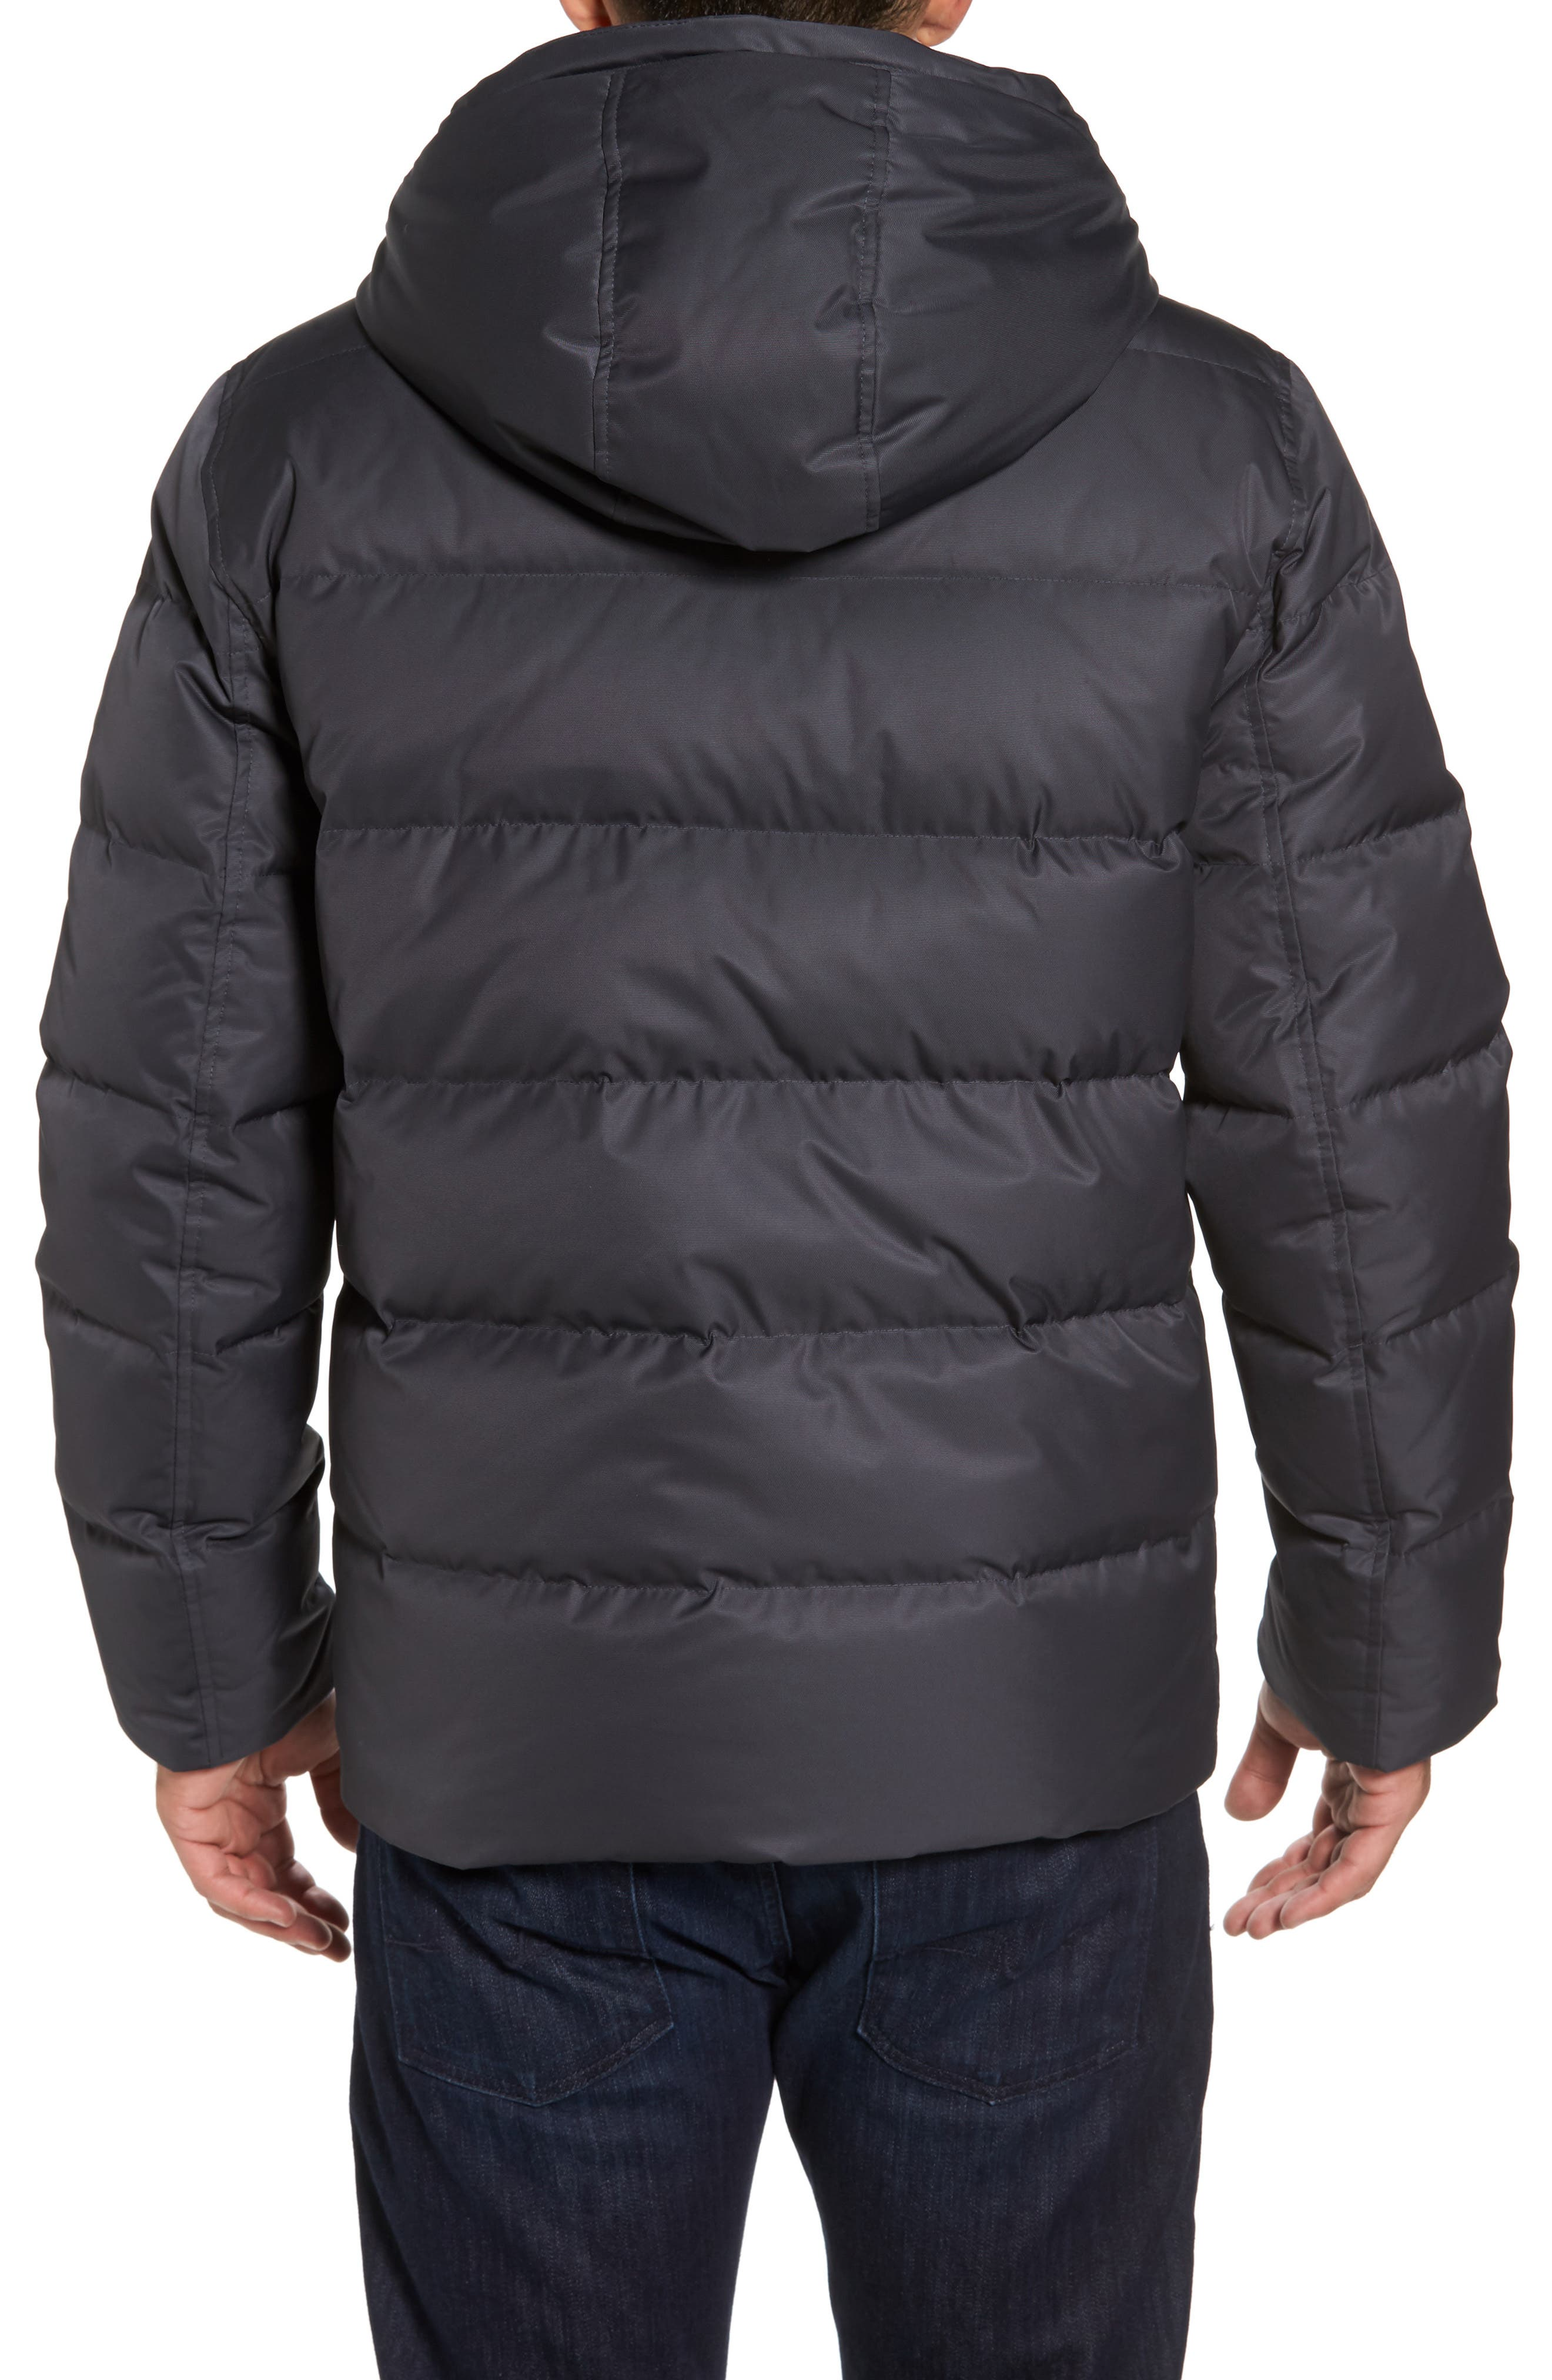 Alternate Image 2  - Andrew Marc Groton Slim Down Jacket with Faux Shearling Lining